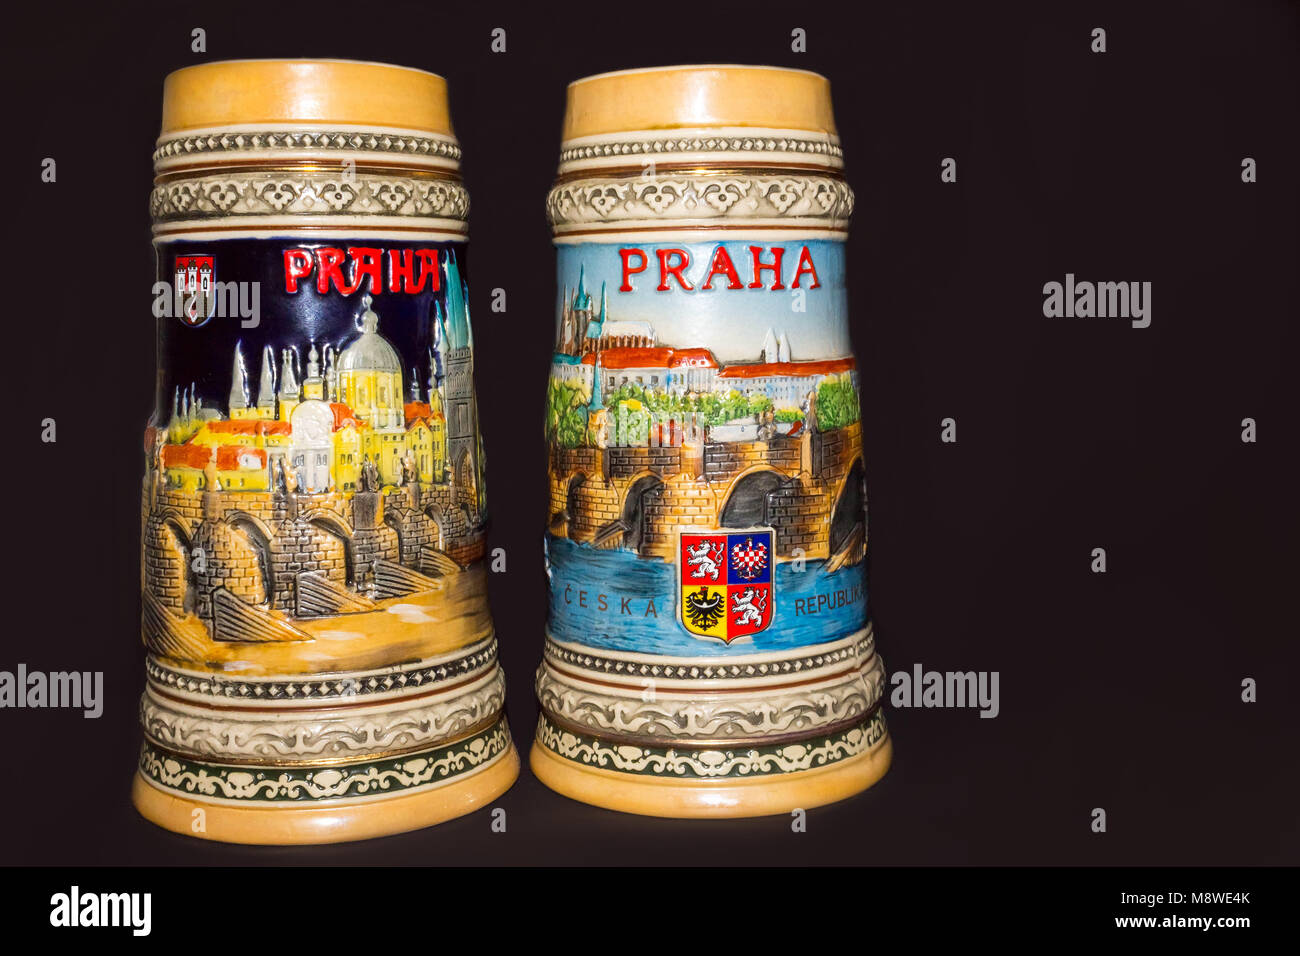 Prague, Czech Republic - February 25, 2018: Closeup of traditional Czech beer mugs on a colored background - Stock Image